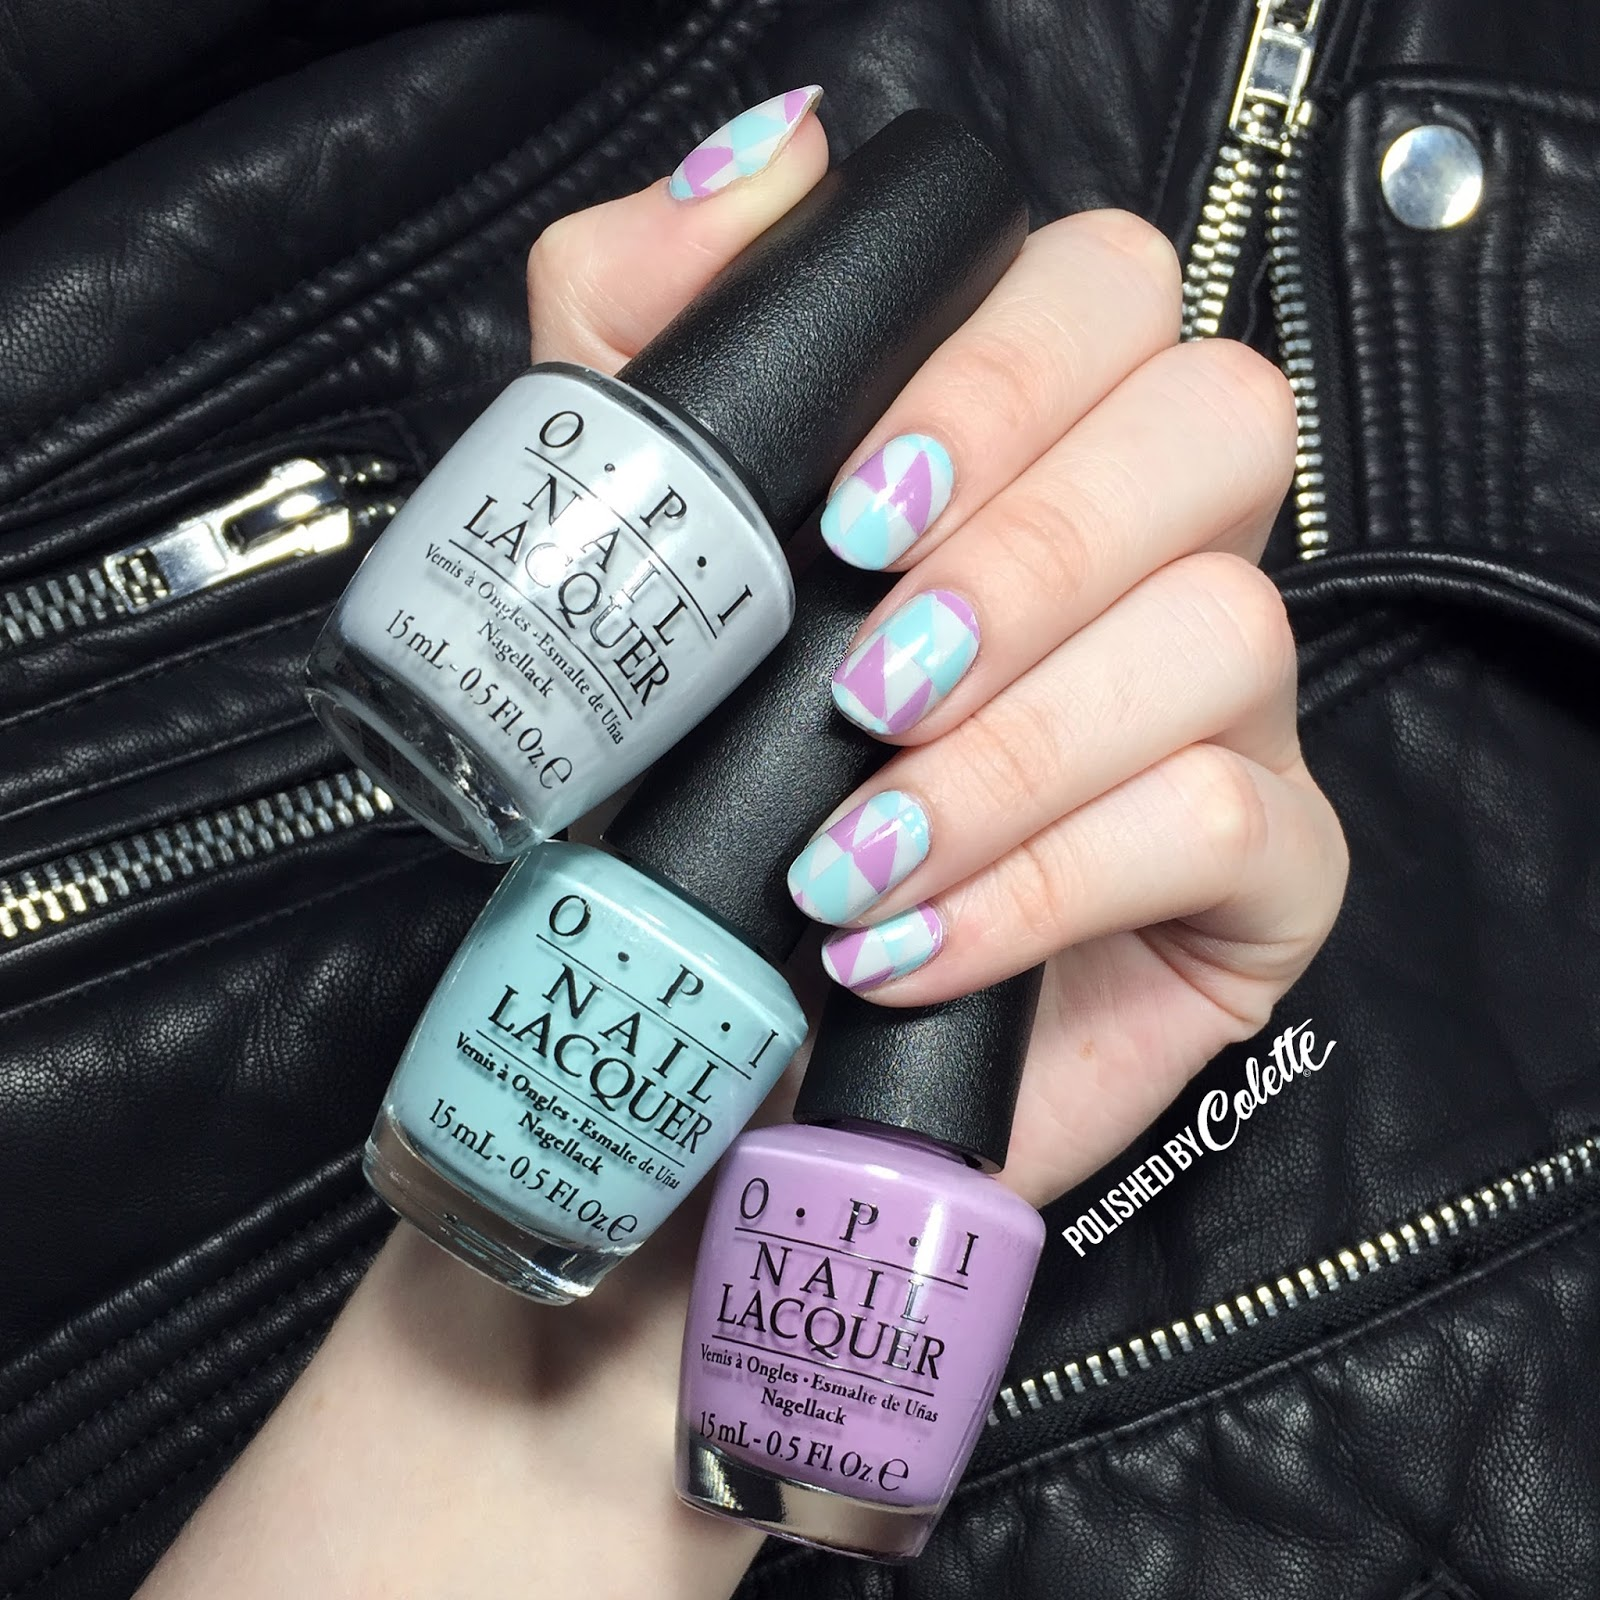 OPI Venice Collection Nail Art - Polished By Colette